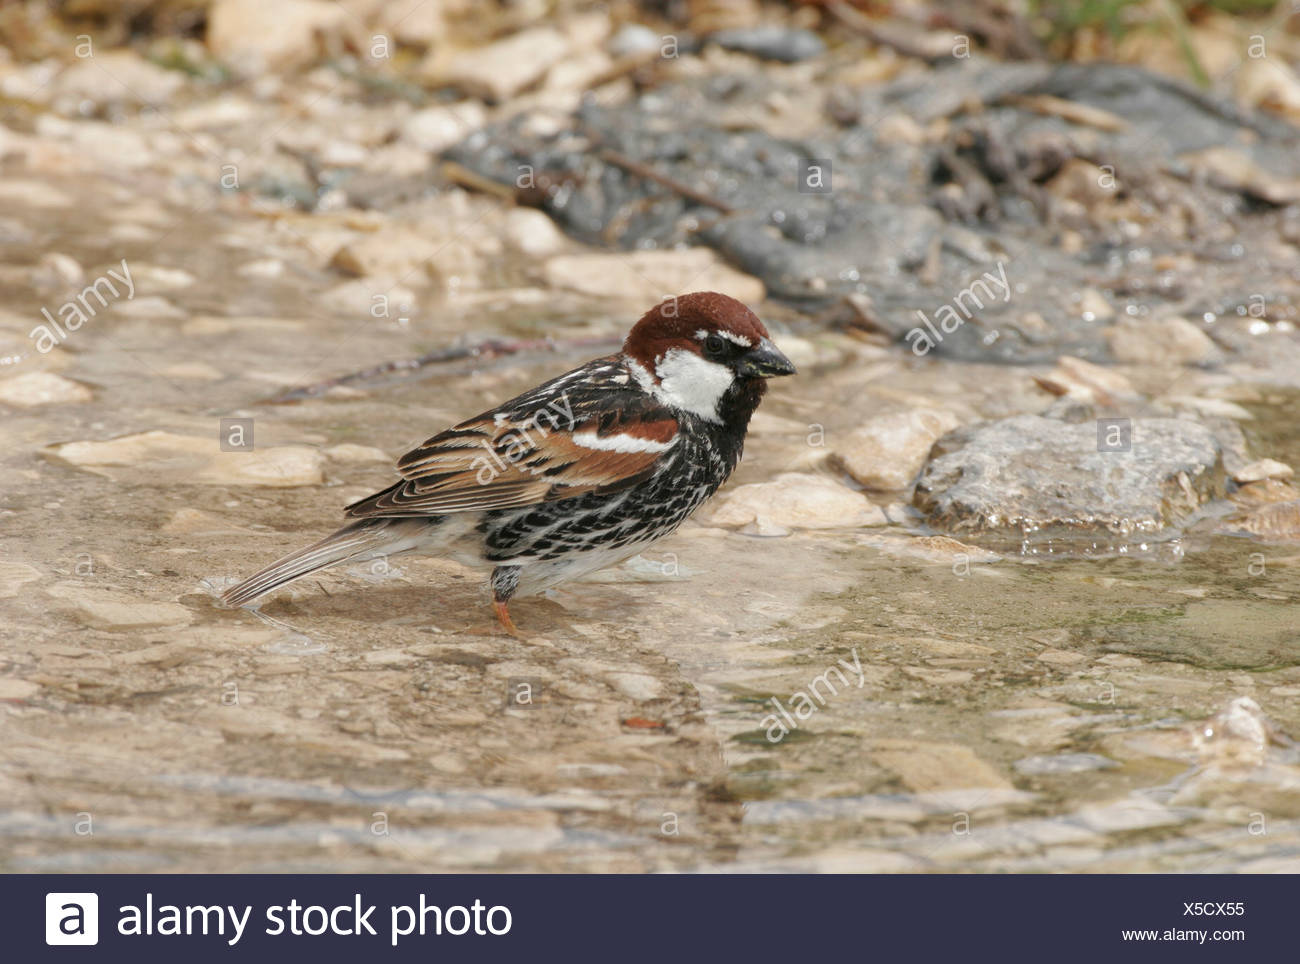 zoology / animals, avian / bird, passeriformes, Spanish Sparrow (Passer hispaniolensis), bird bathing in puddle, Dalmatia, Croatia, distribution: Mediterranean region, Additional-Rights-Clearance-Info-Not-Available - Stock Image